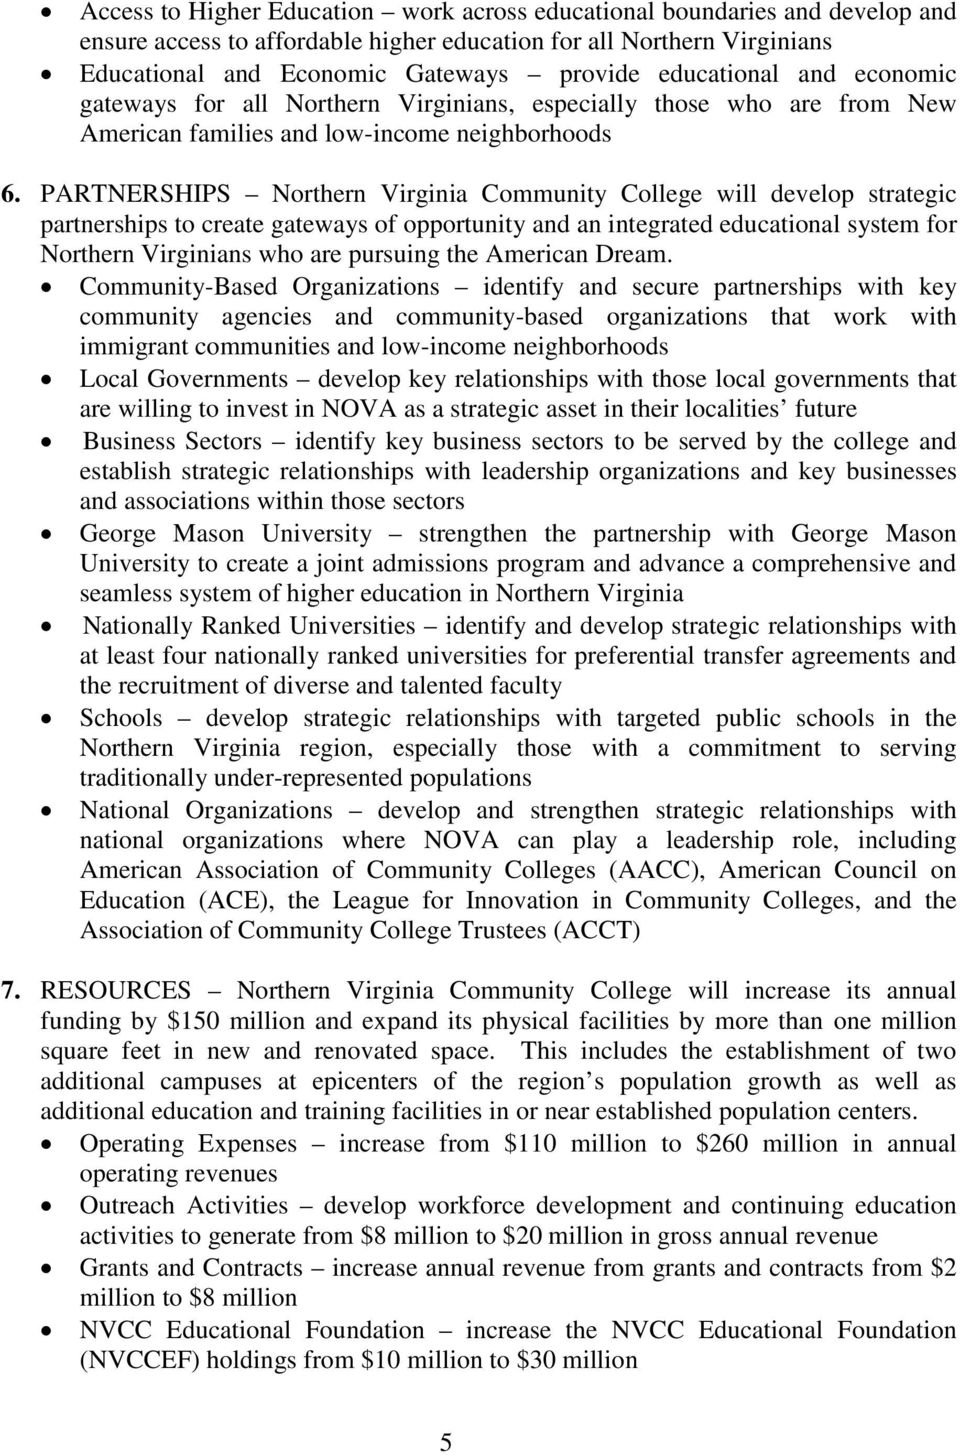 PARTNERSHIPS Northern Virginia Community College will develop strategic partnerships to create gateways of opportunity and an integrated educational system for Northern Virginians who are pursuing